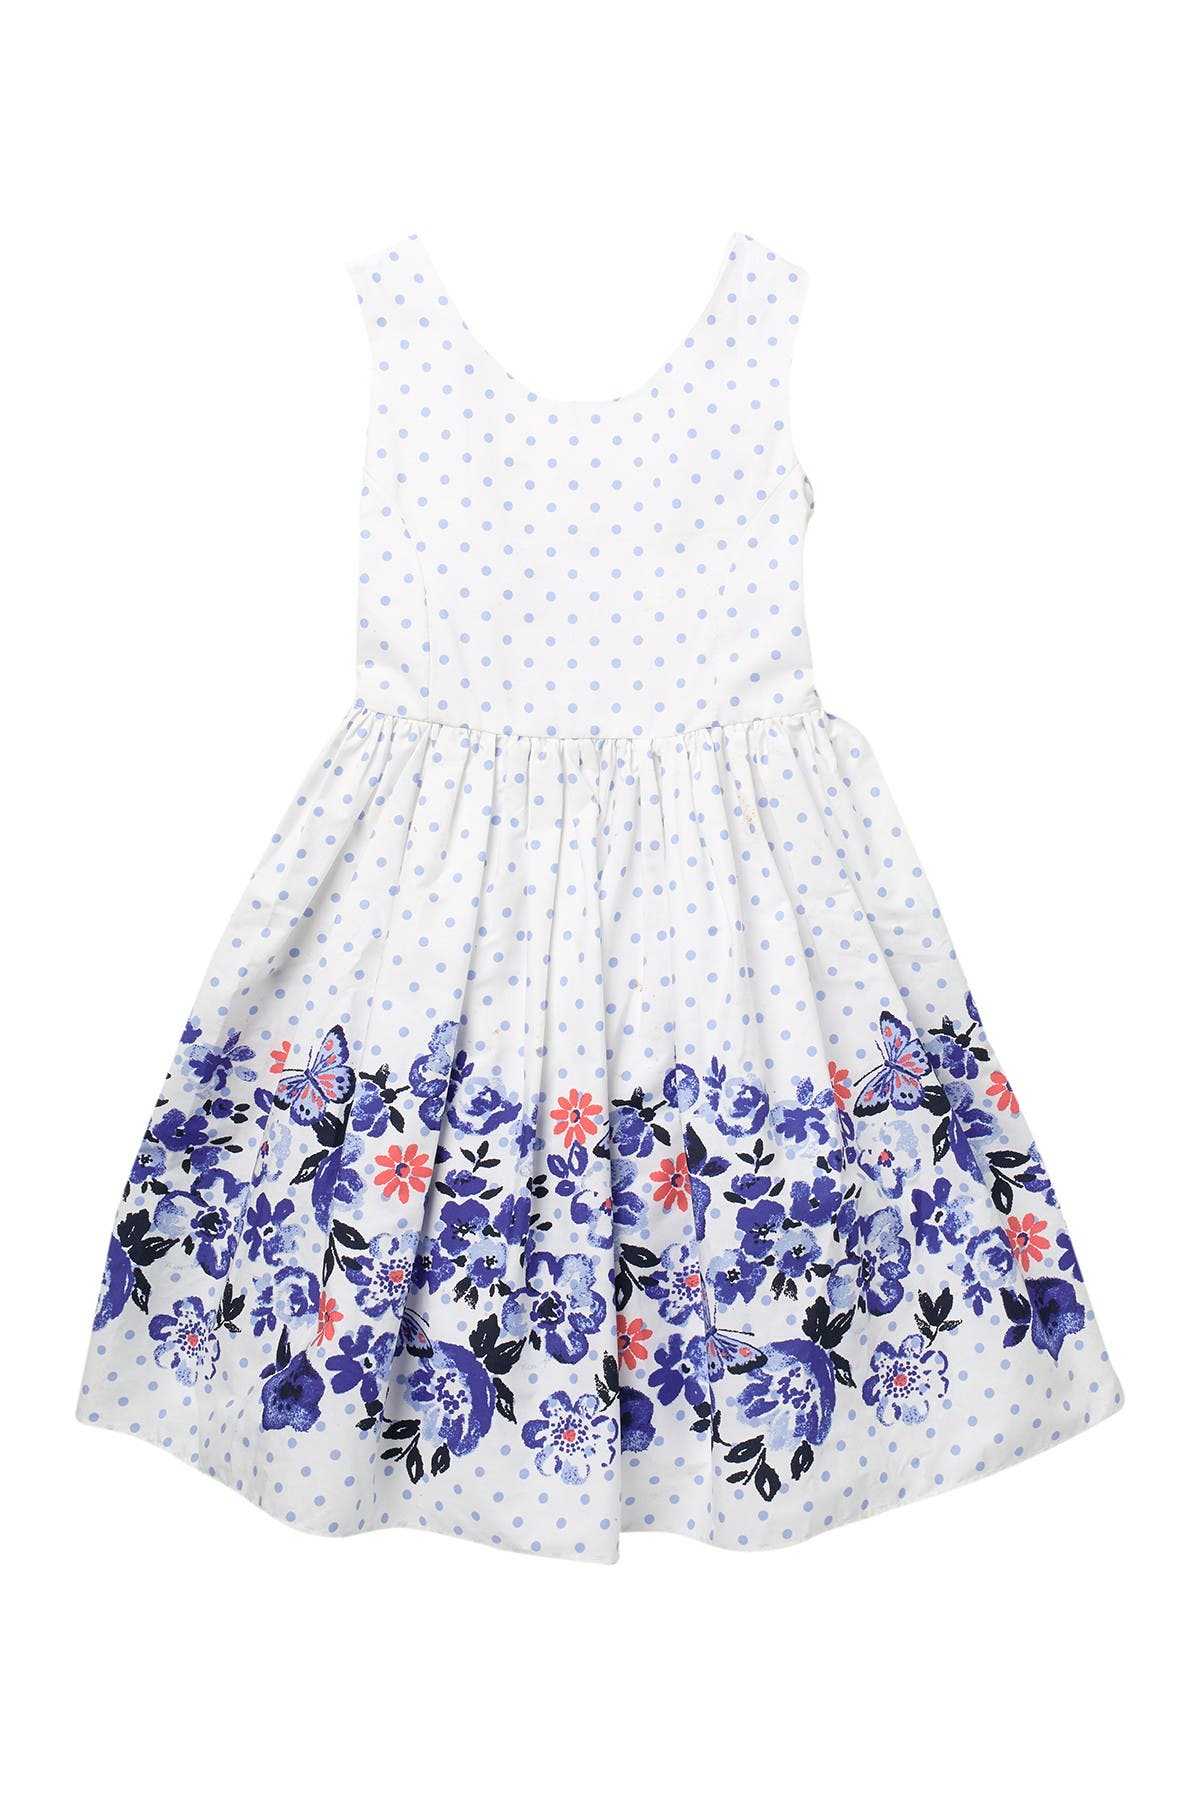 Image of Laura Ashley Polka Dot Dress with Floral Border